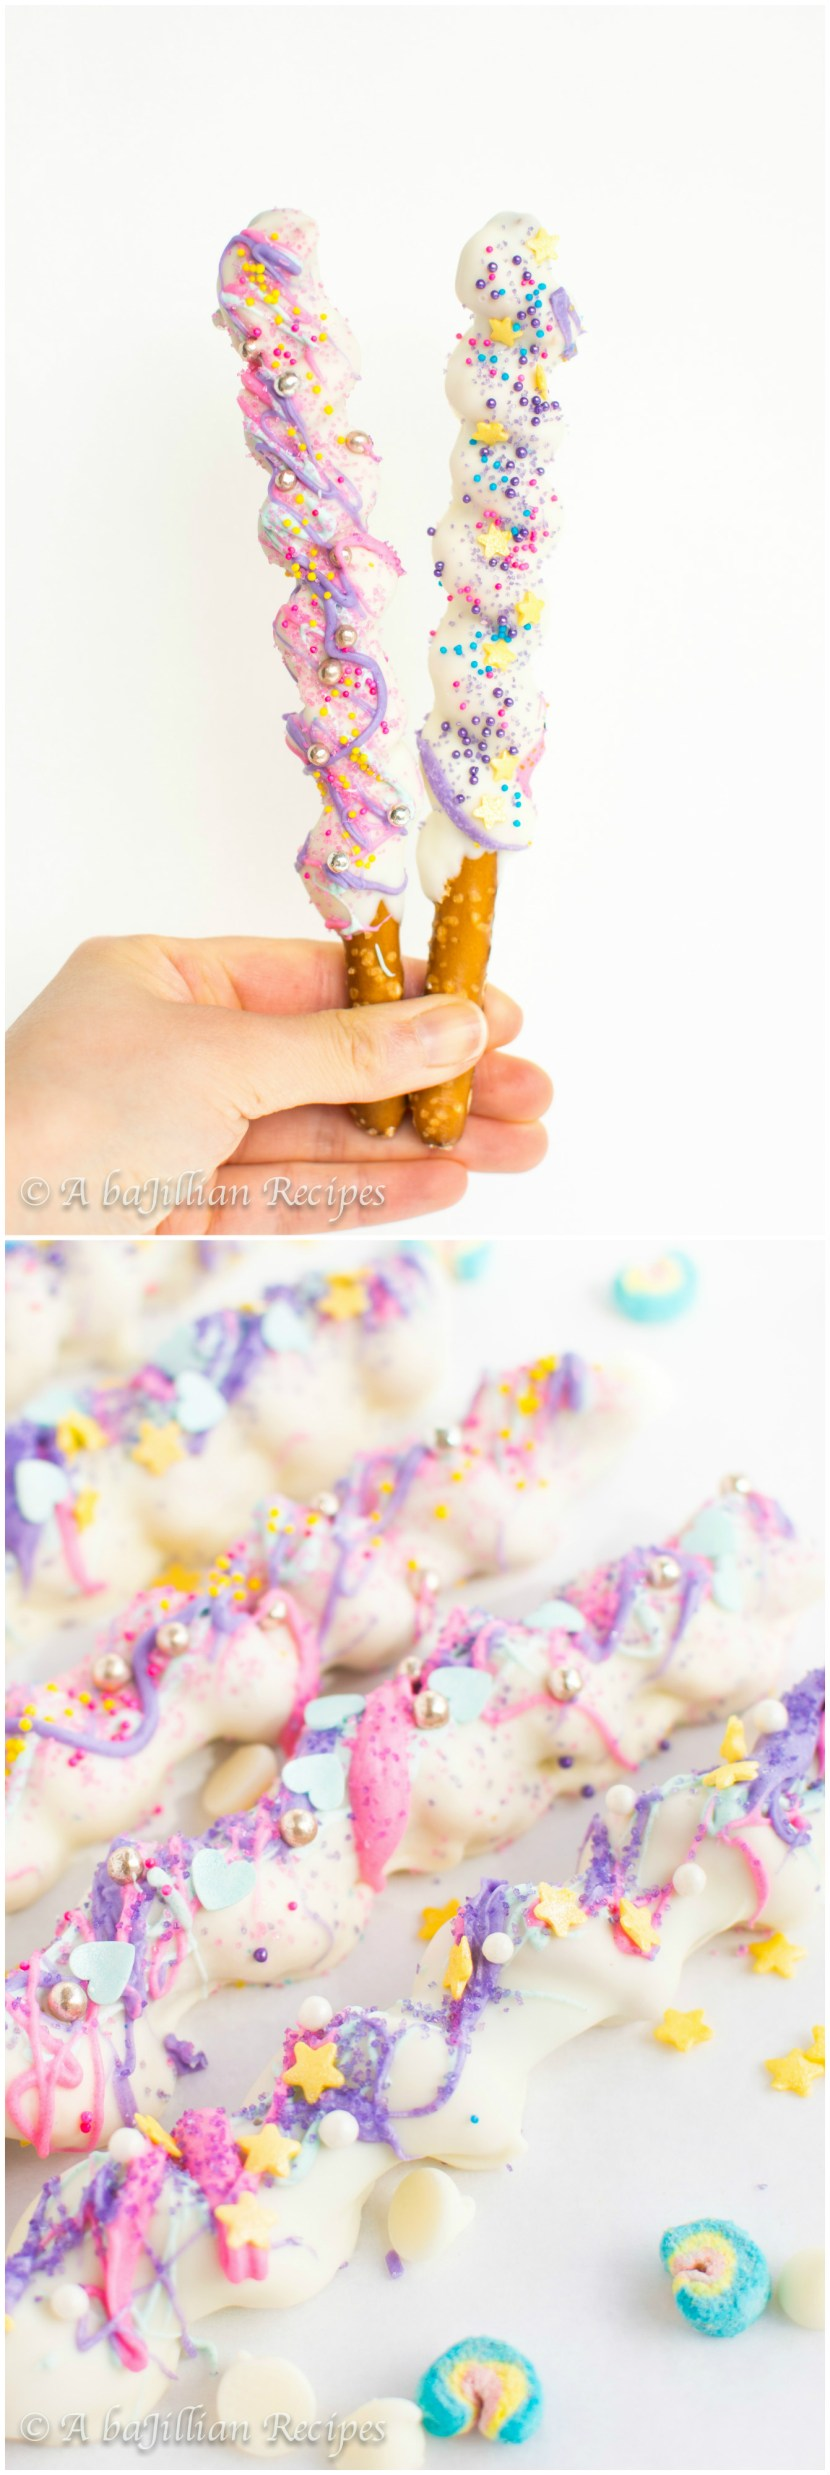 Unicorn Horns | A baJillian Recipes1